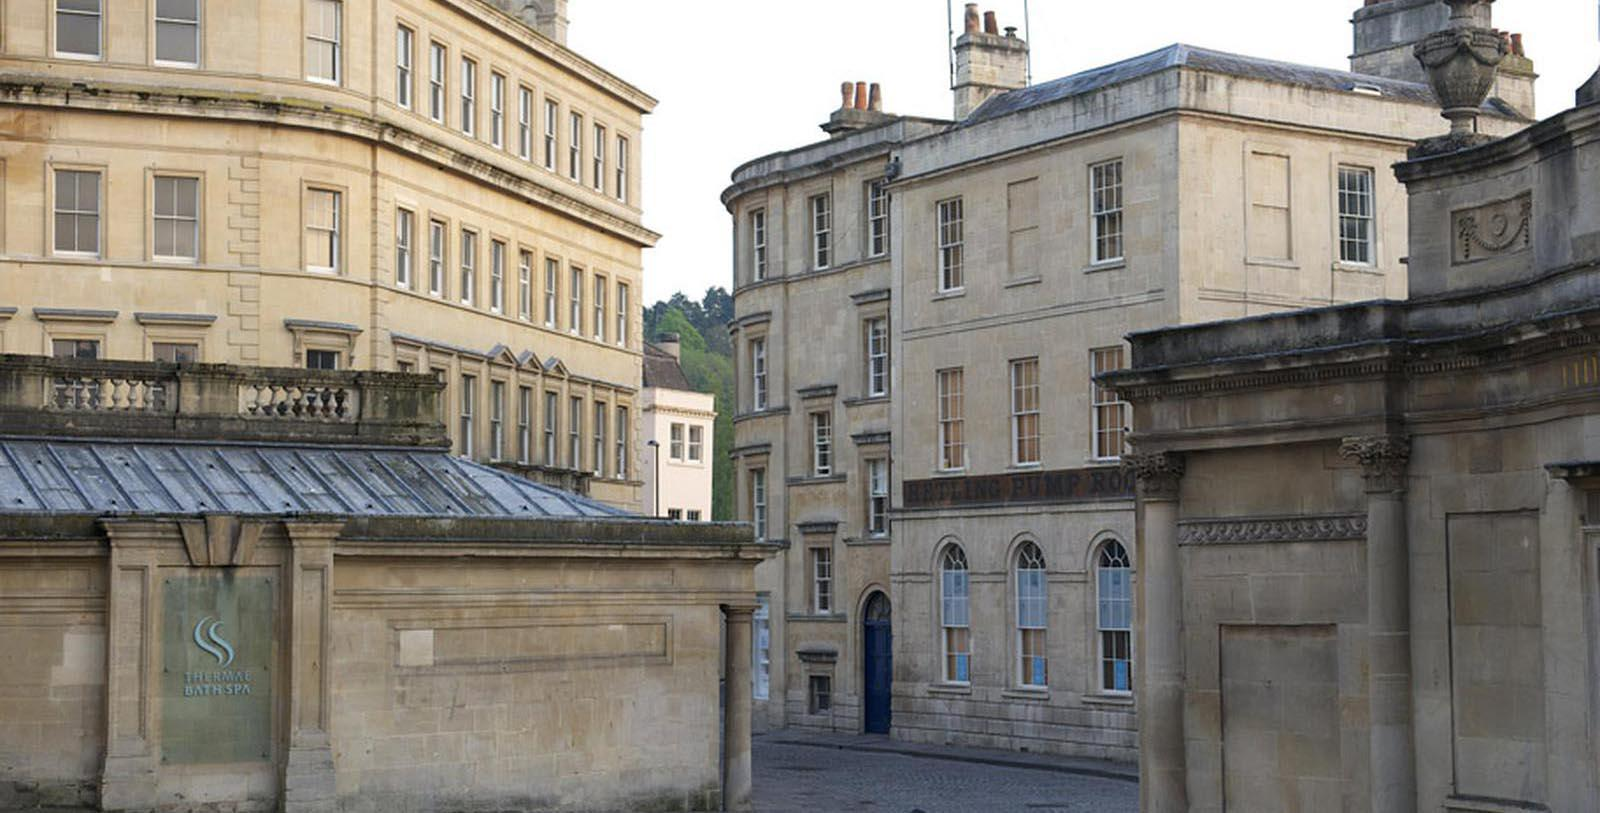 Image of Hotel Exterior Francis Hotel Bath - MGallery by Sofitel, 1736, Member of Historic Hotels Worldwide, in Bath, England, Discover